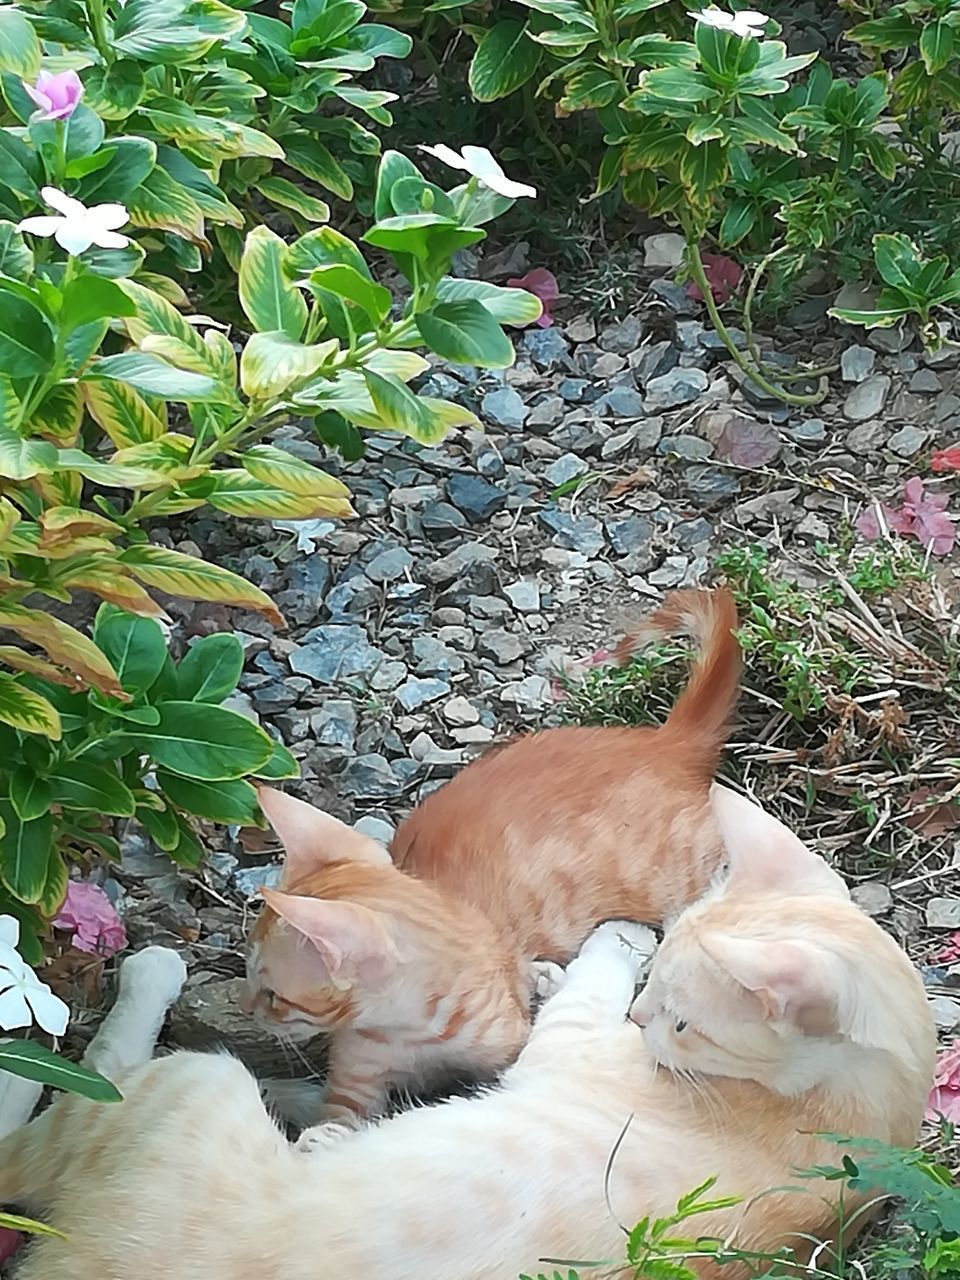 domestic, domestic animals, pets, mammal, one animal, animal themes, vertebrate, animal, domestic cat, cat, feline, plant, no people, dog, canine, day, nature, relaxation, plant part, leaf, ginger cat, whisker